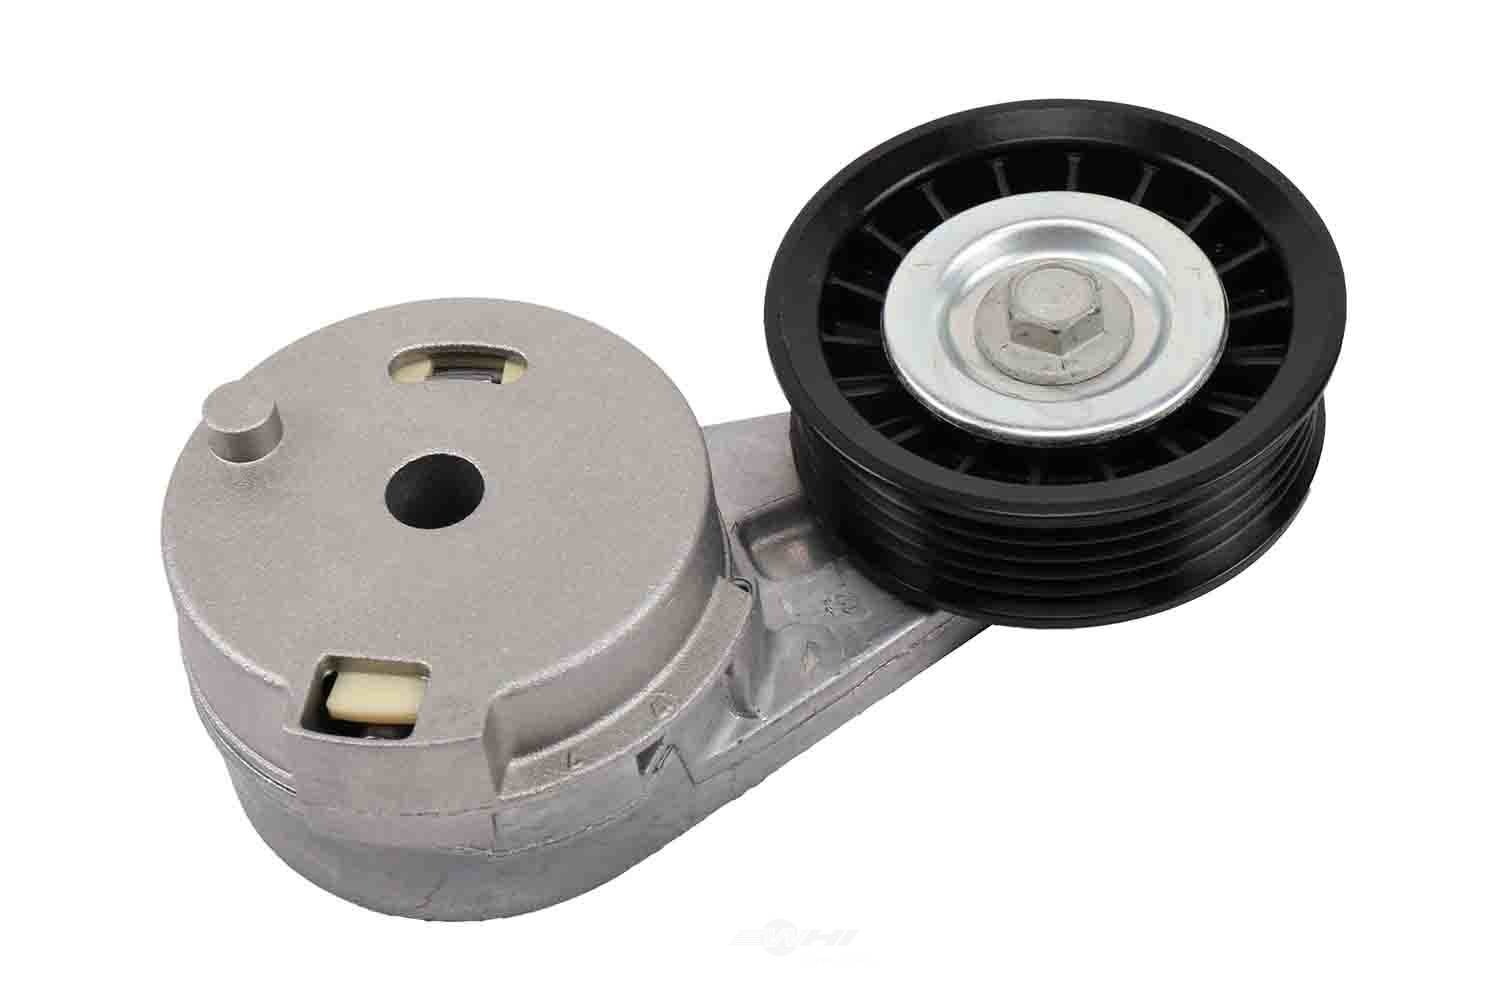 ACDELCO GM ORIGINAL EQUIPMENT - Accessory Drive Belt Tensioner Assembly - DCB 12603527